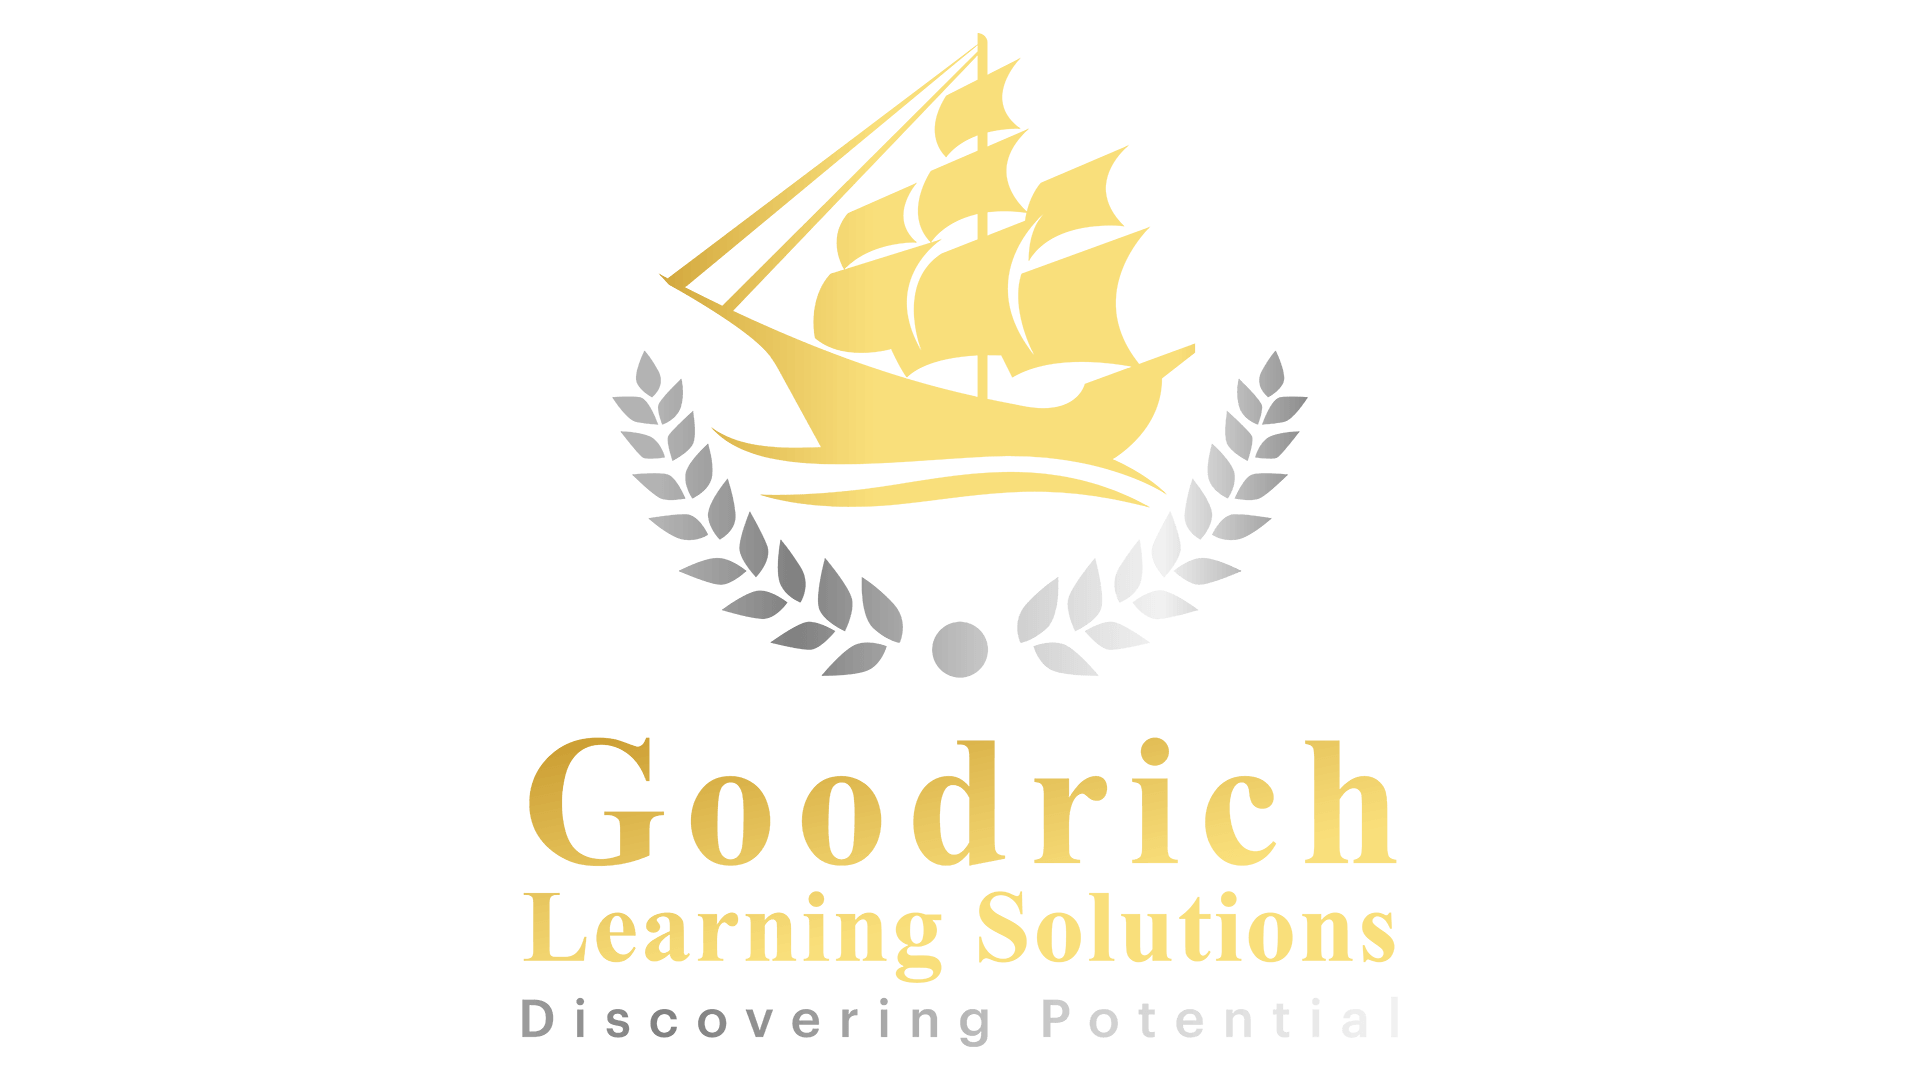 Goodrich Learning Solutions